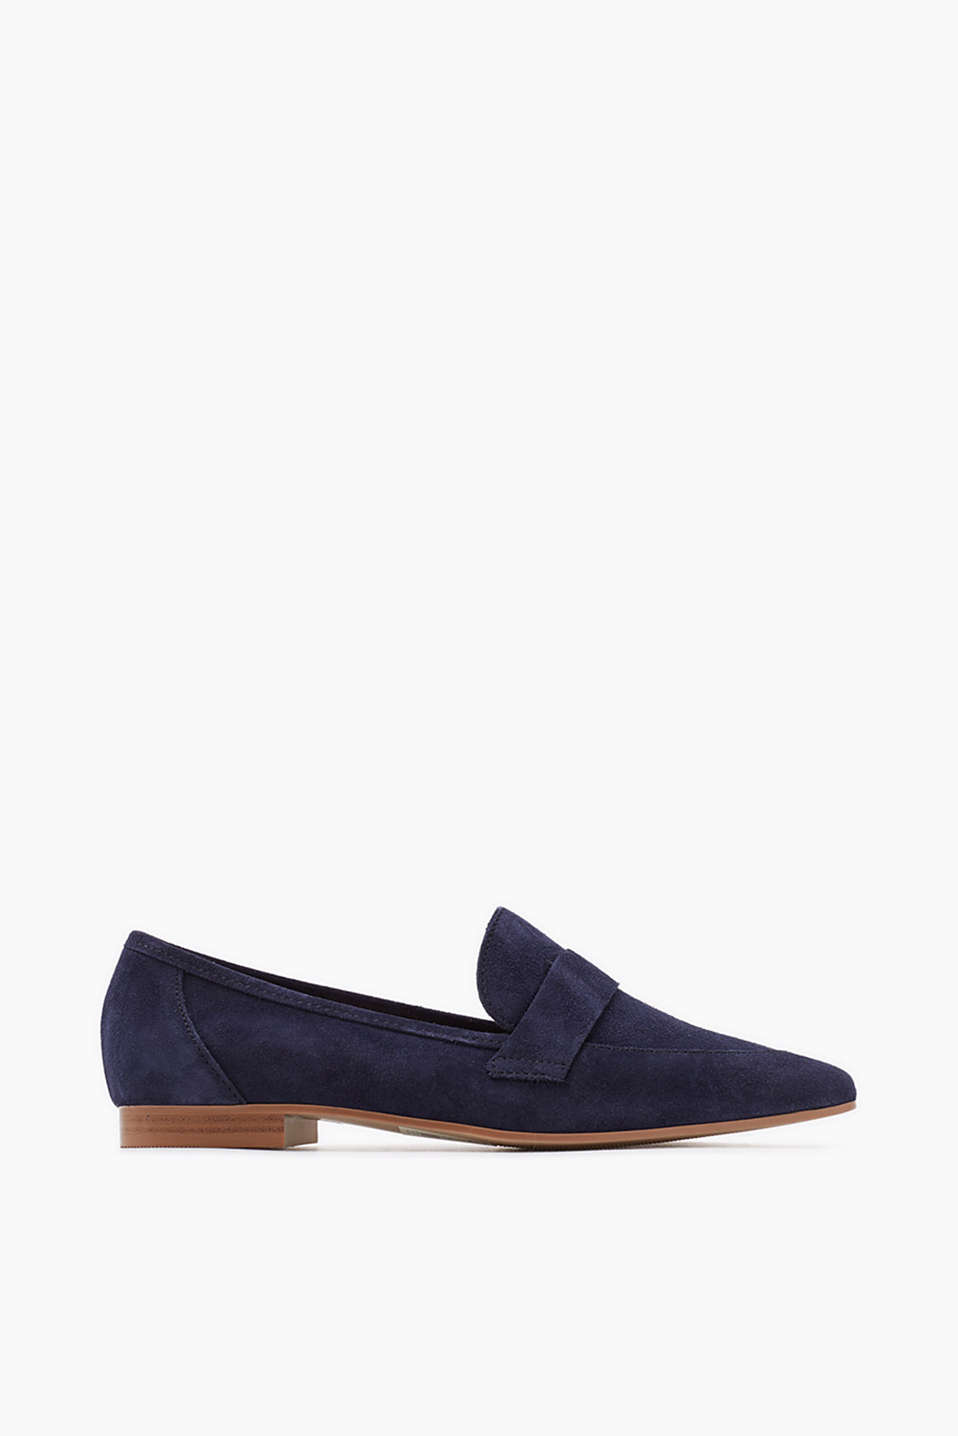 Cowhide leather loafers in a feminine, pointed design